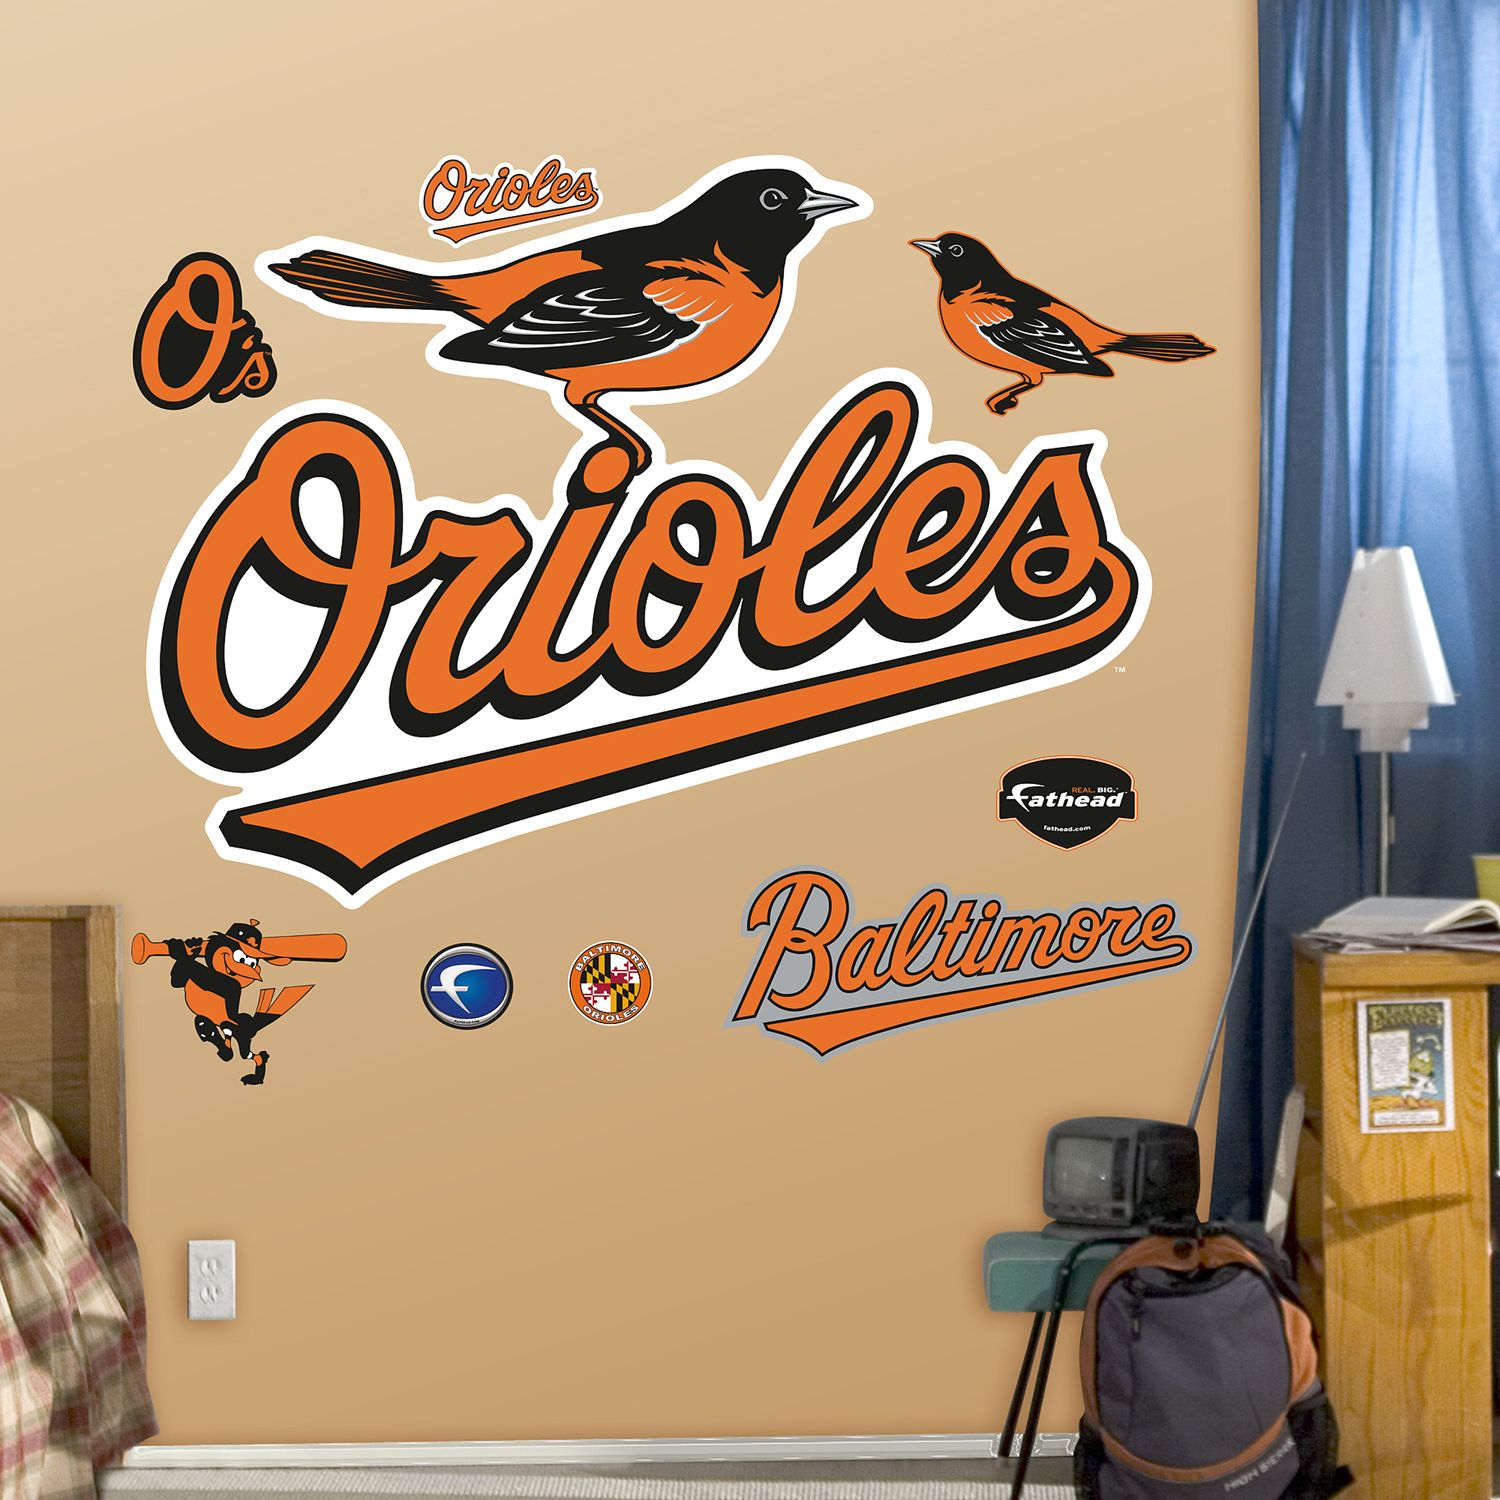 photo relating to Baltimore Orioles Printable Schedule identify Orioles promo code : 2018 Discount codes